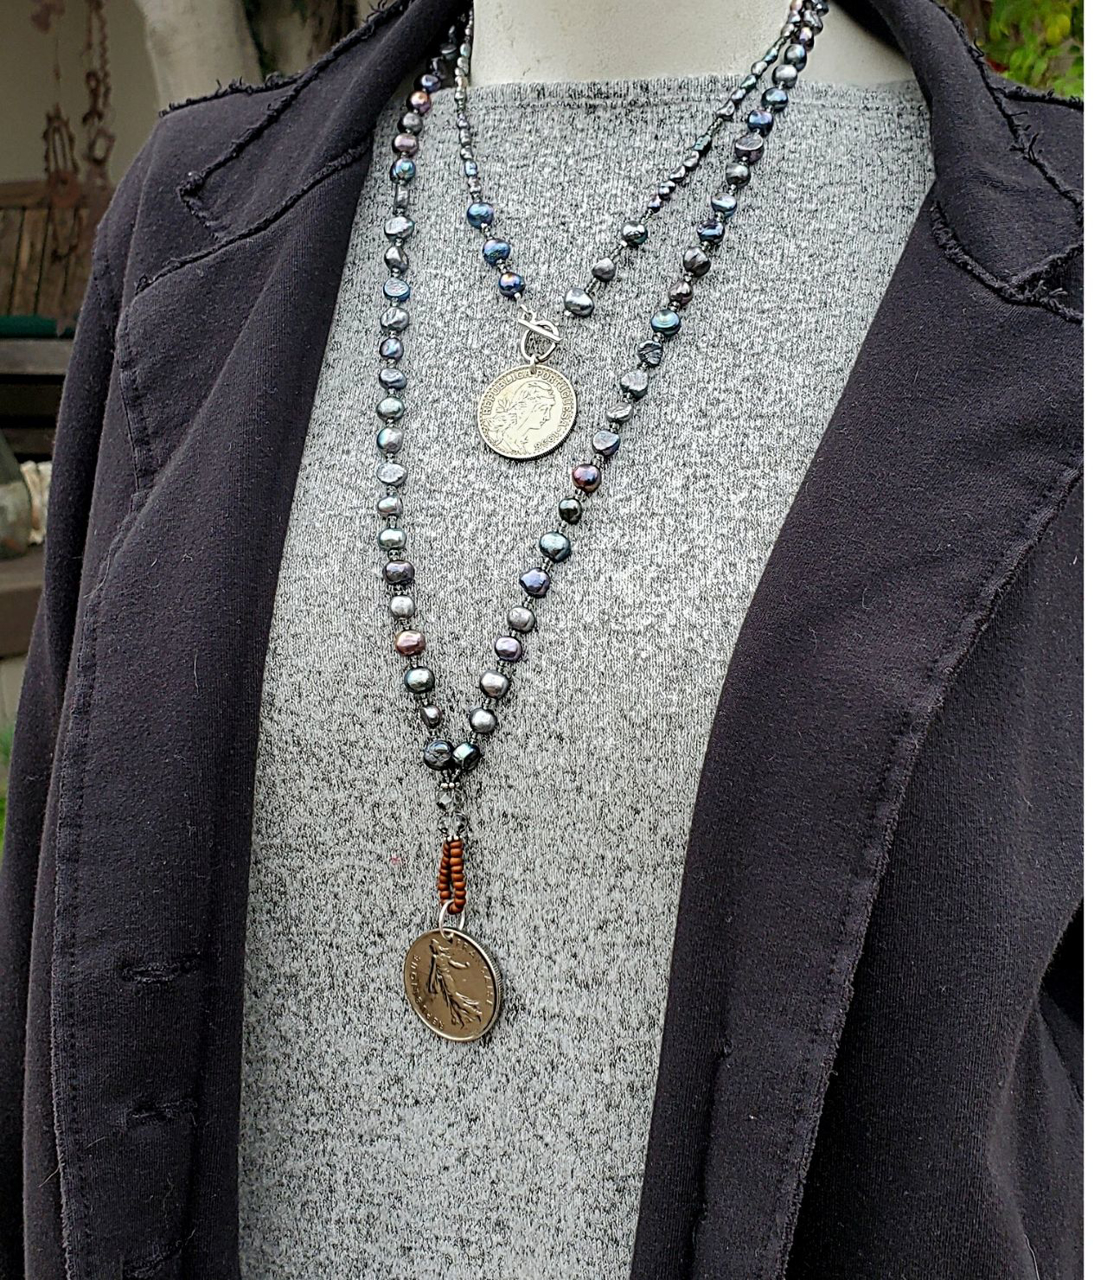 Wearing blue pearl silver coin layered necklaces